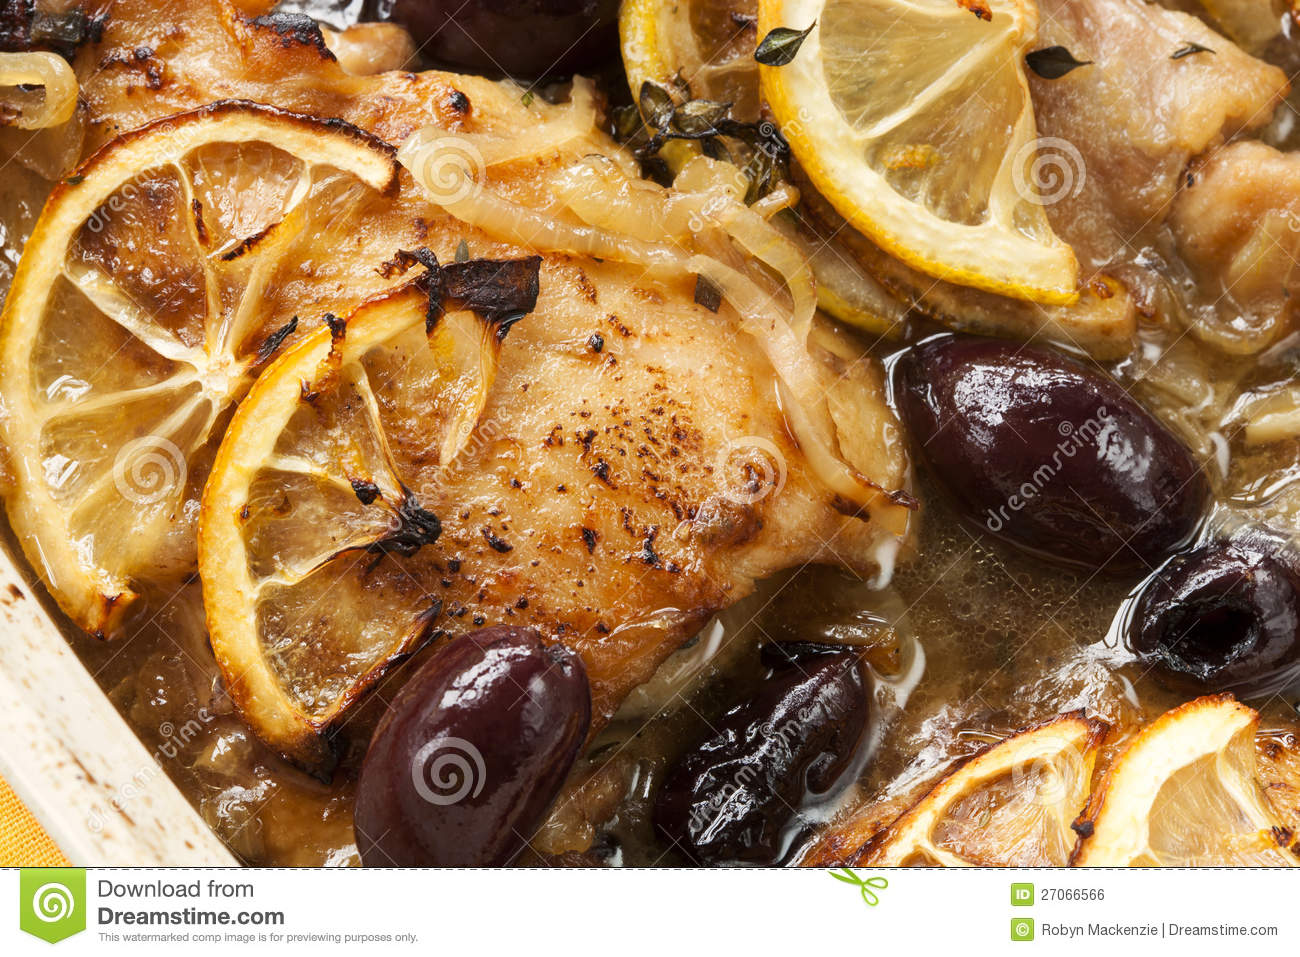 Roasted Lemon Chicken Royalty Free Stock Image - Image: 27066566